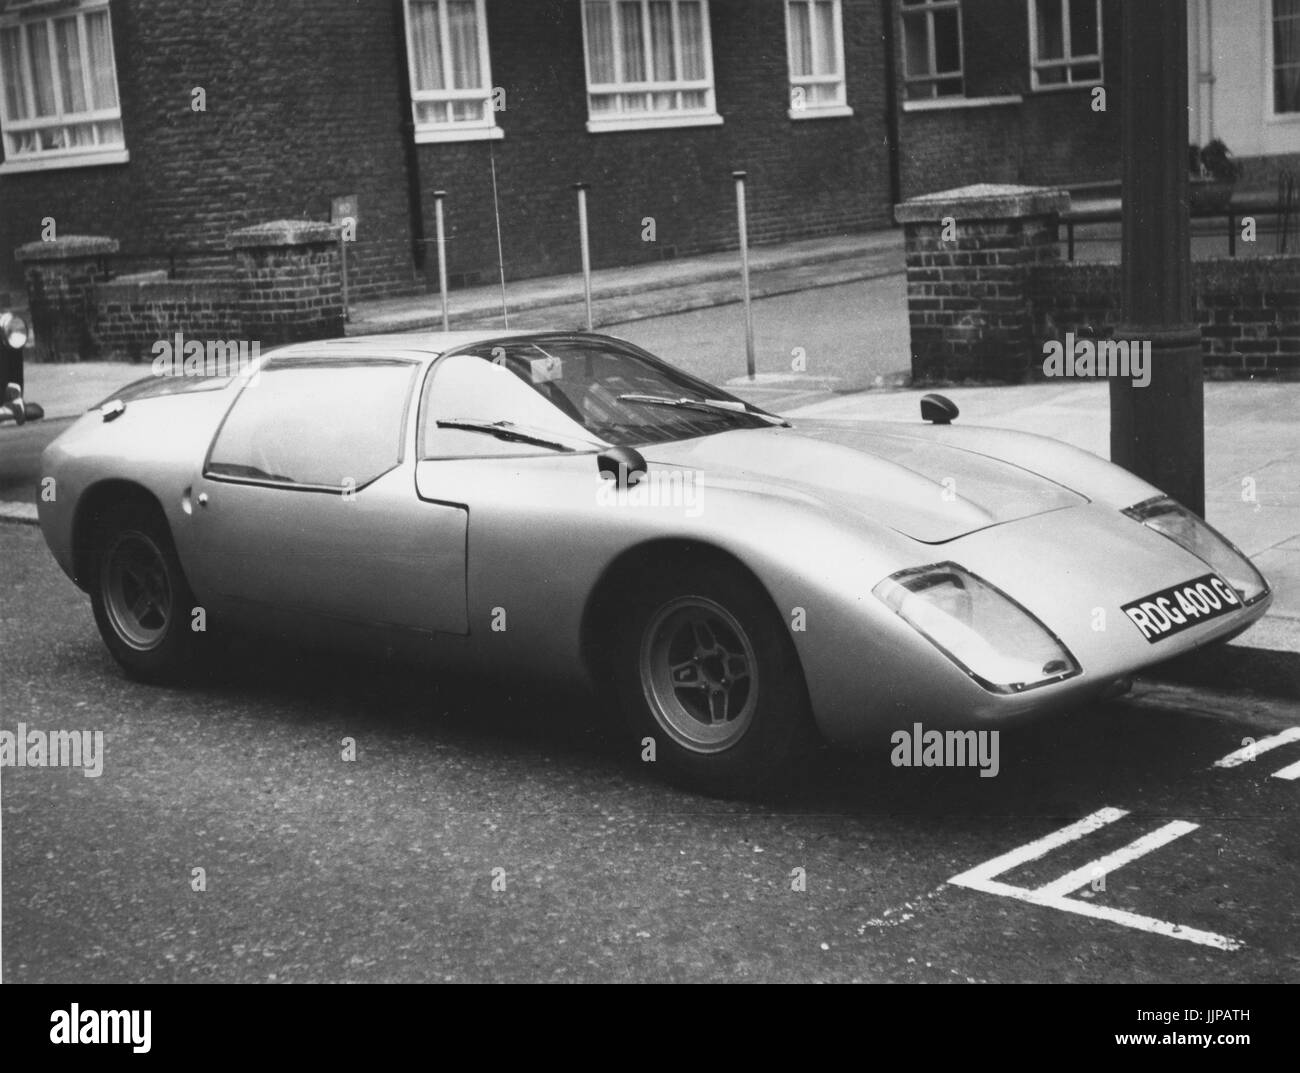 Piper GTT Coupe 1969 - Stock Image